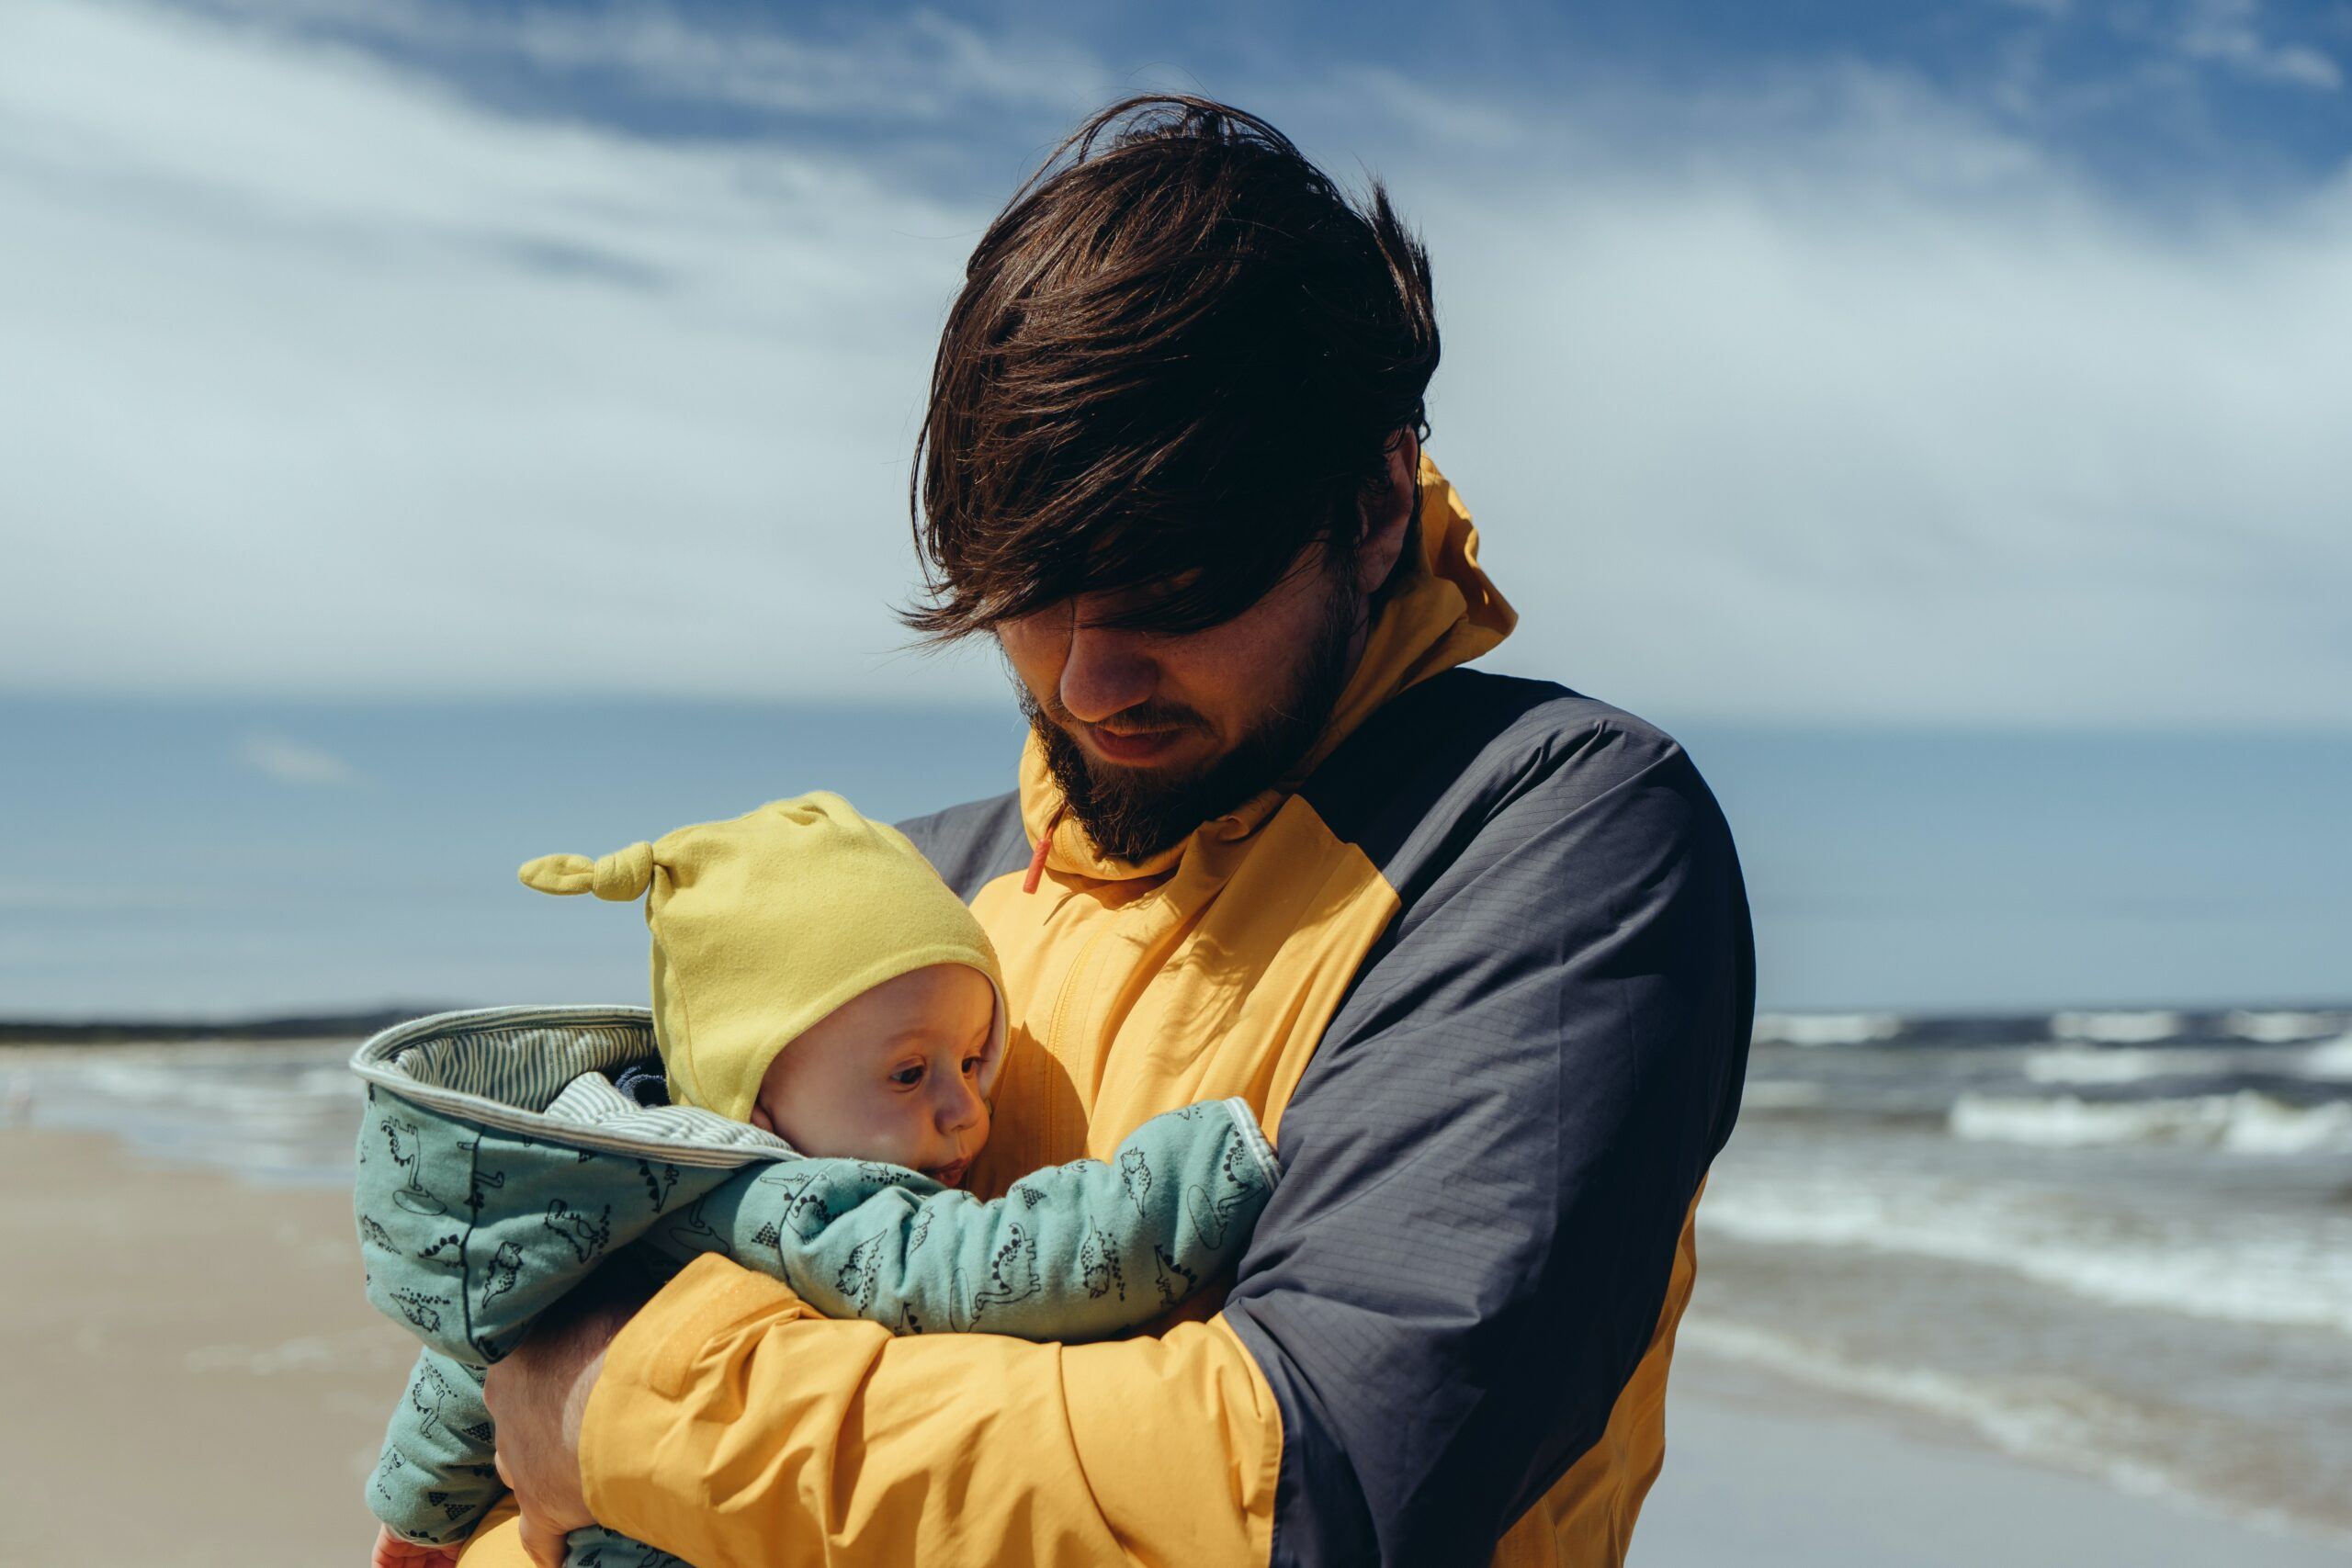 Watch: What is the importance of fathers in America today?